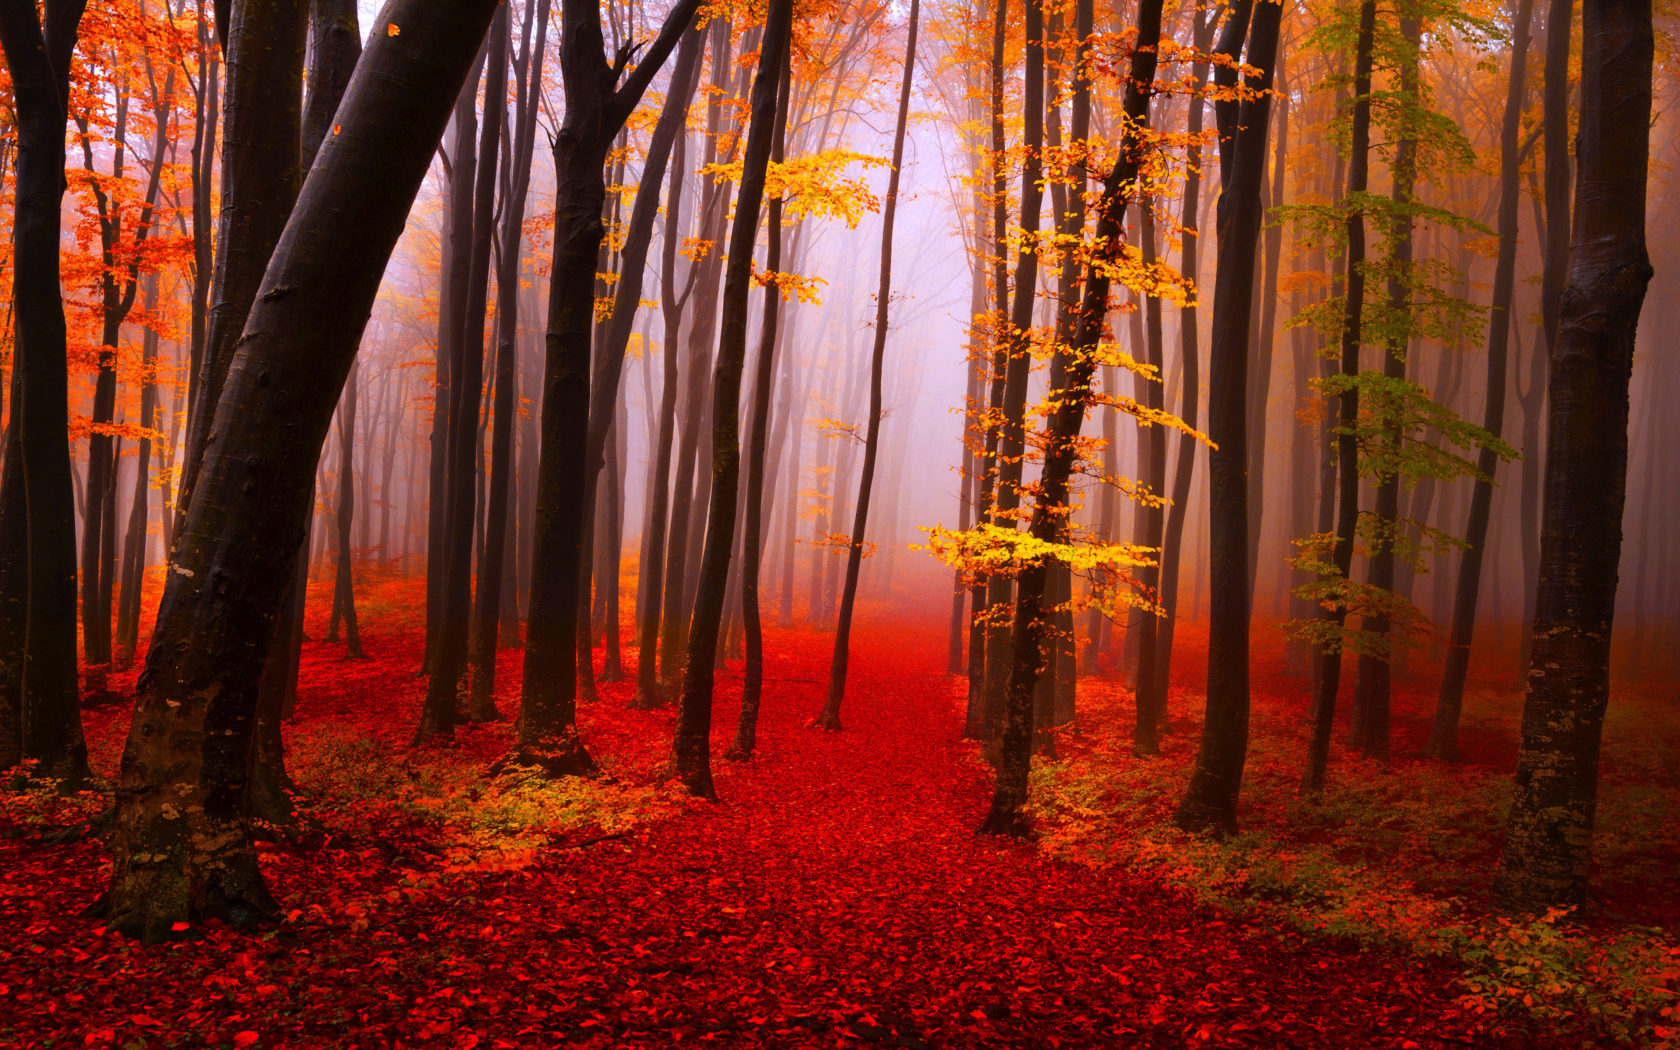 Free Computer Wallpaper Fall Leaves Autumn Forest Path Trees Fog Fall Yellow And Red Leaves